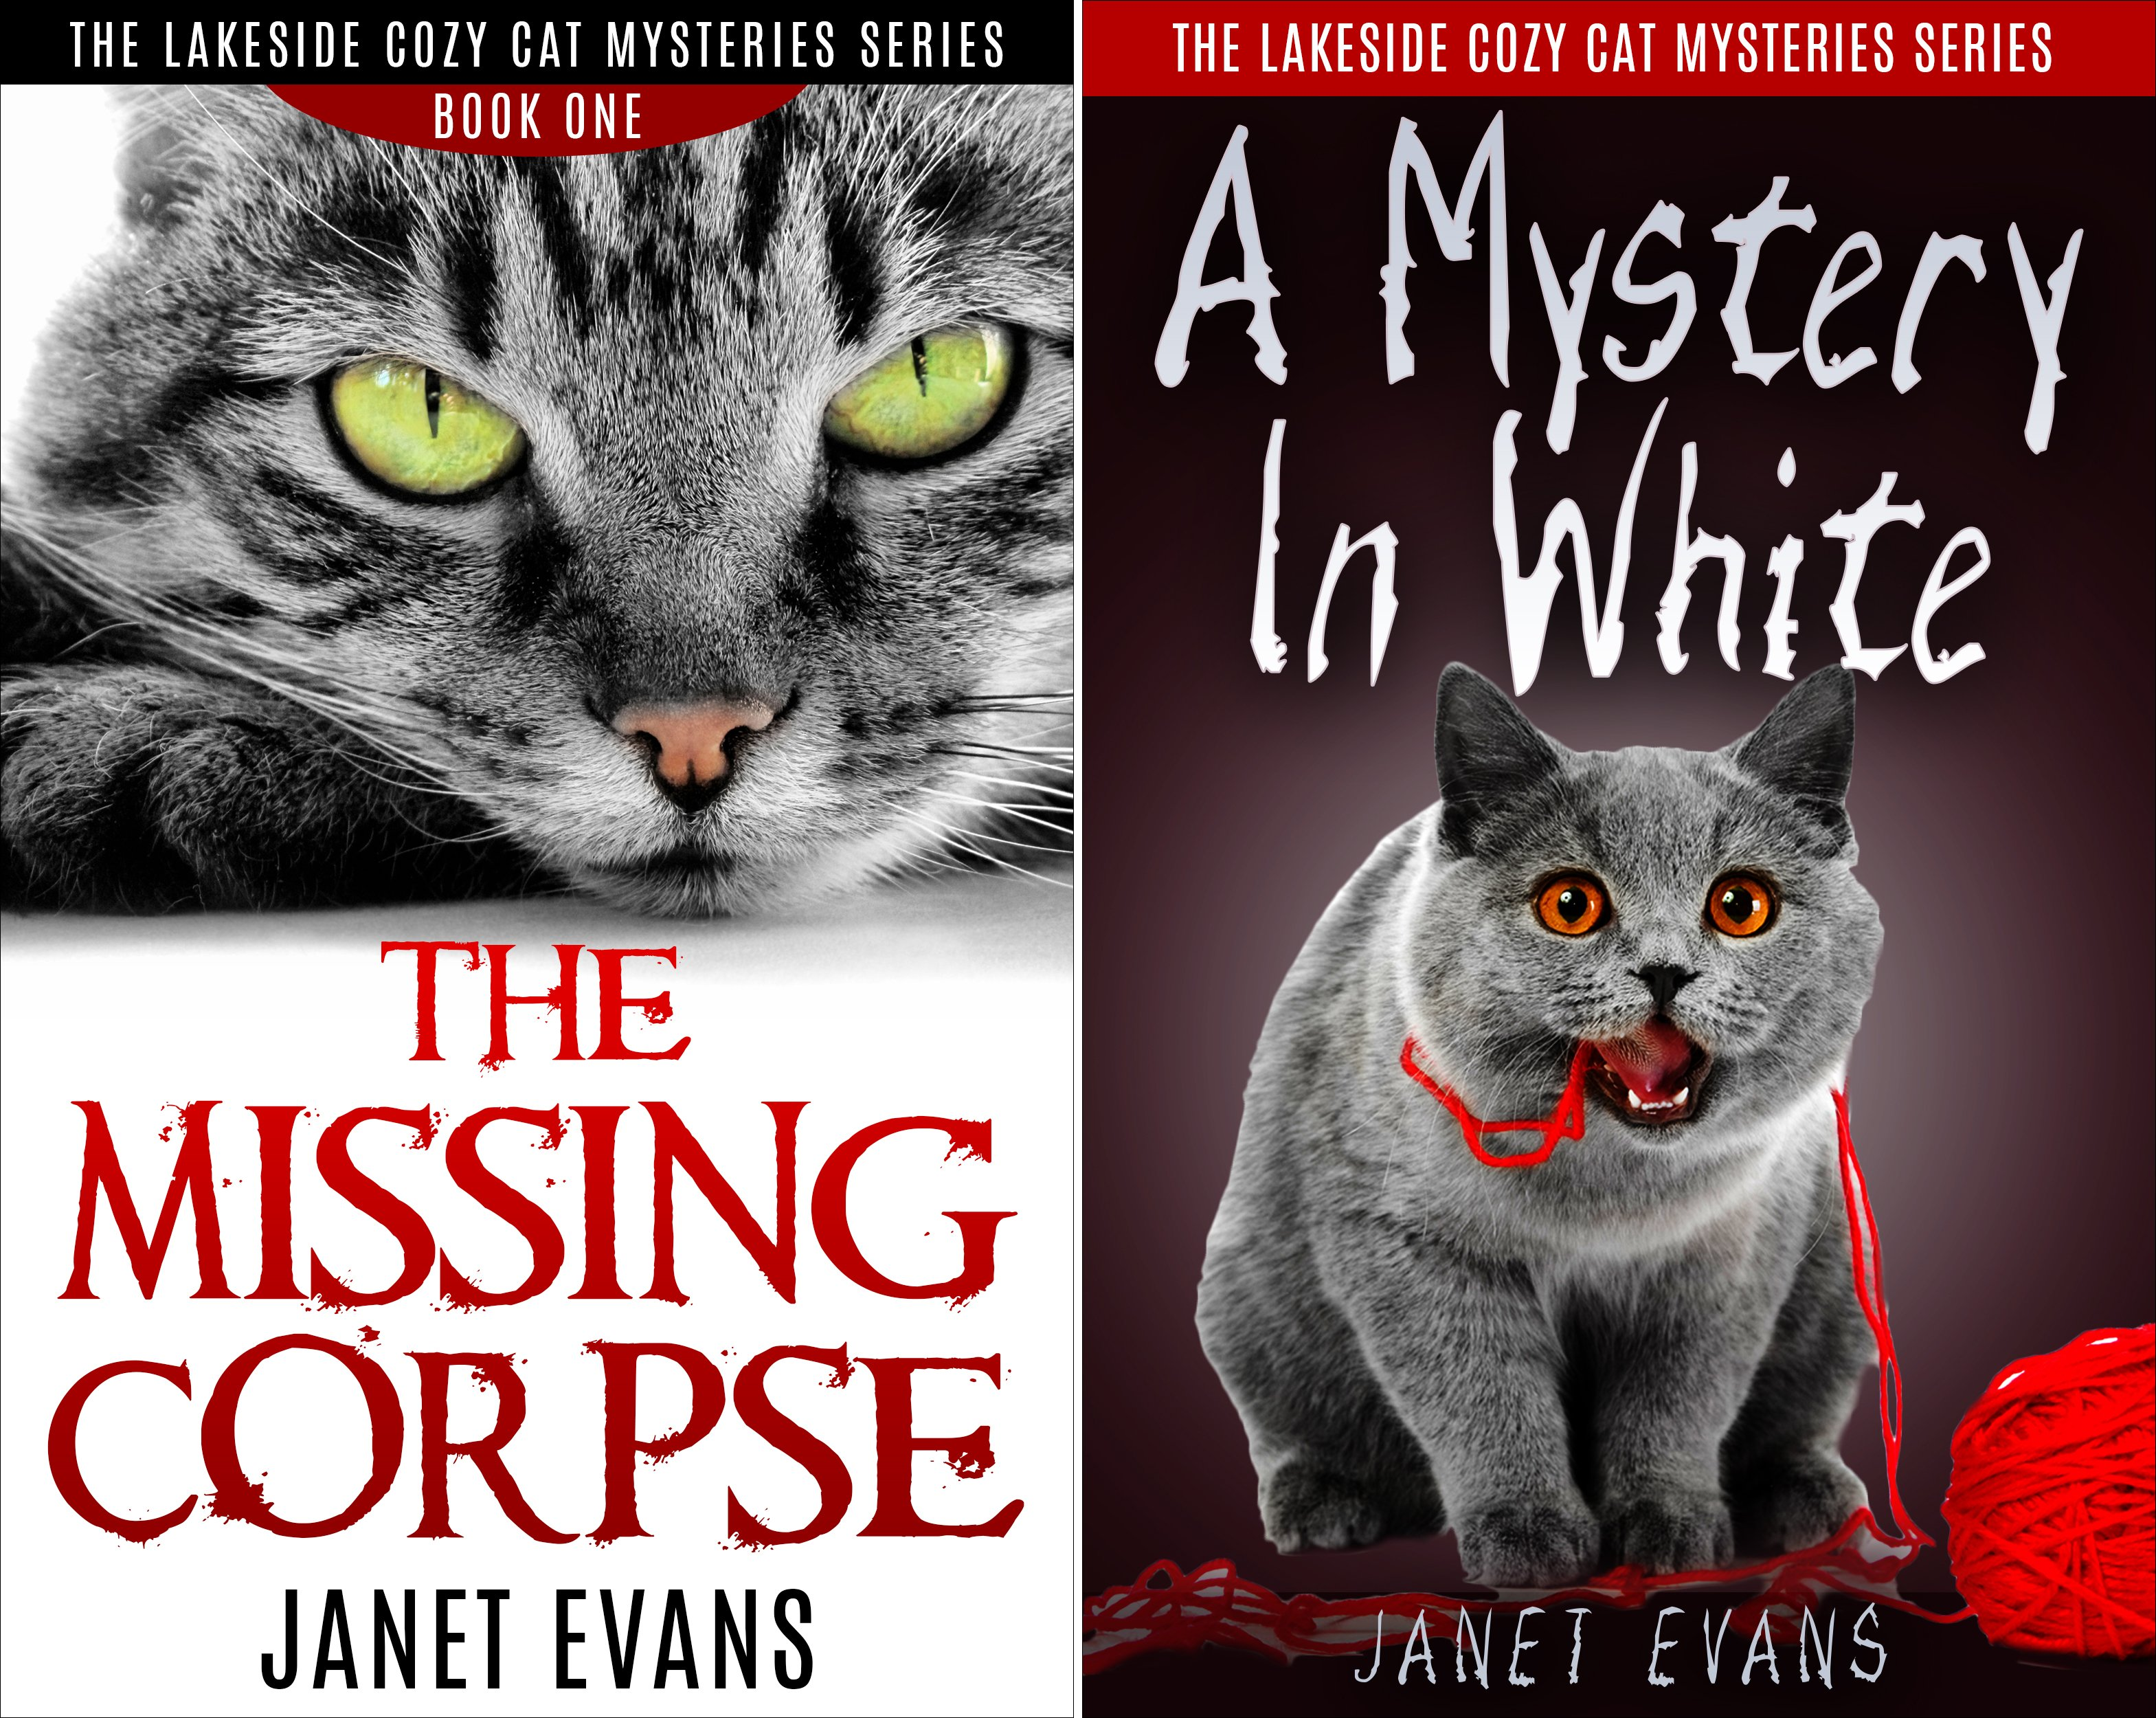 The Lakeside Cozy Cat Mysteries Series (2 Book Series)